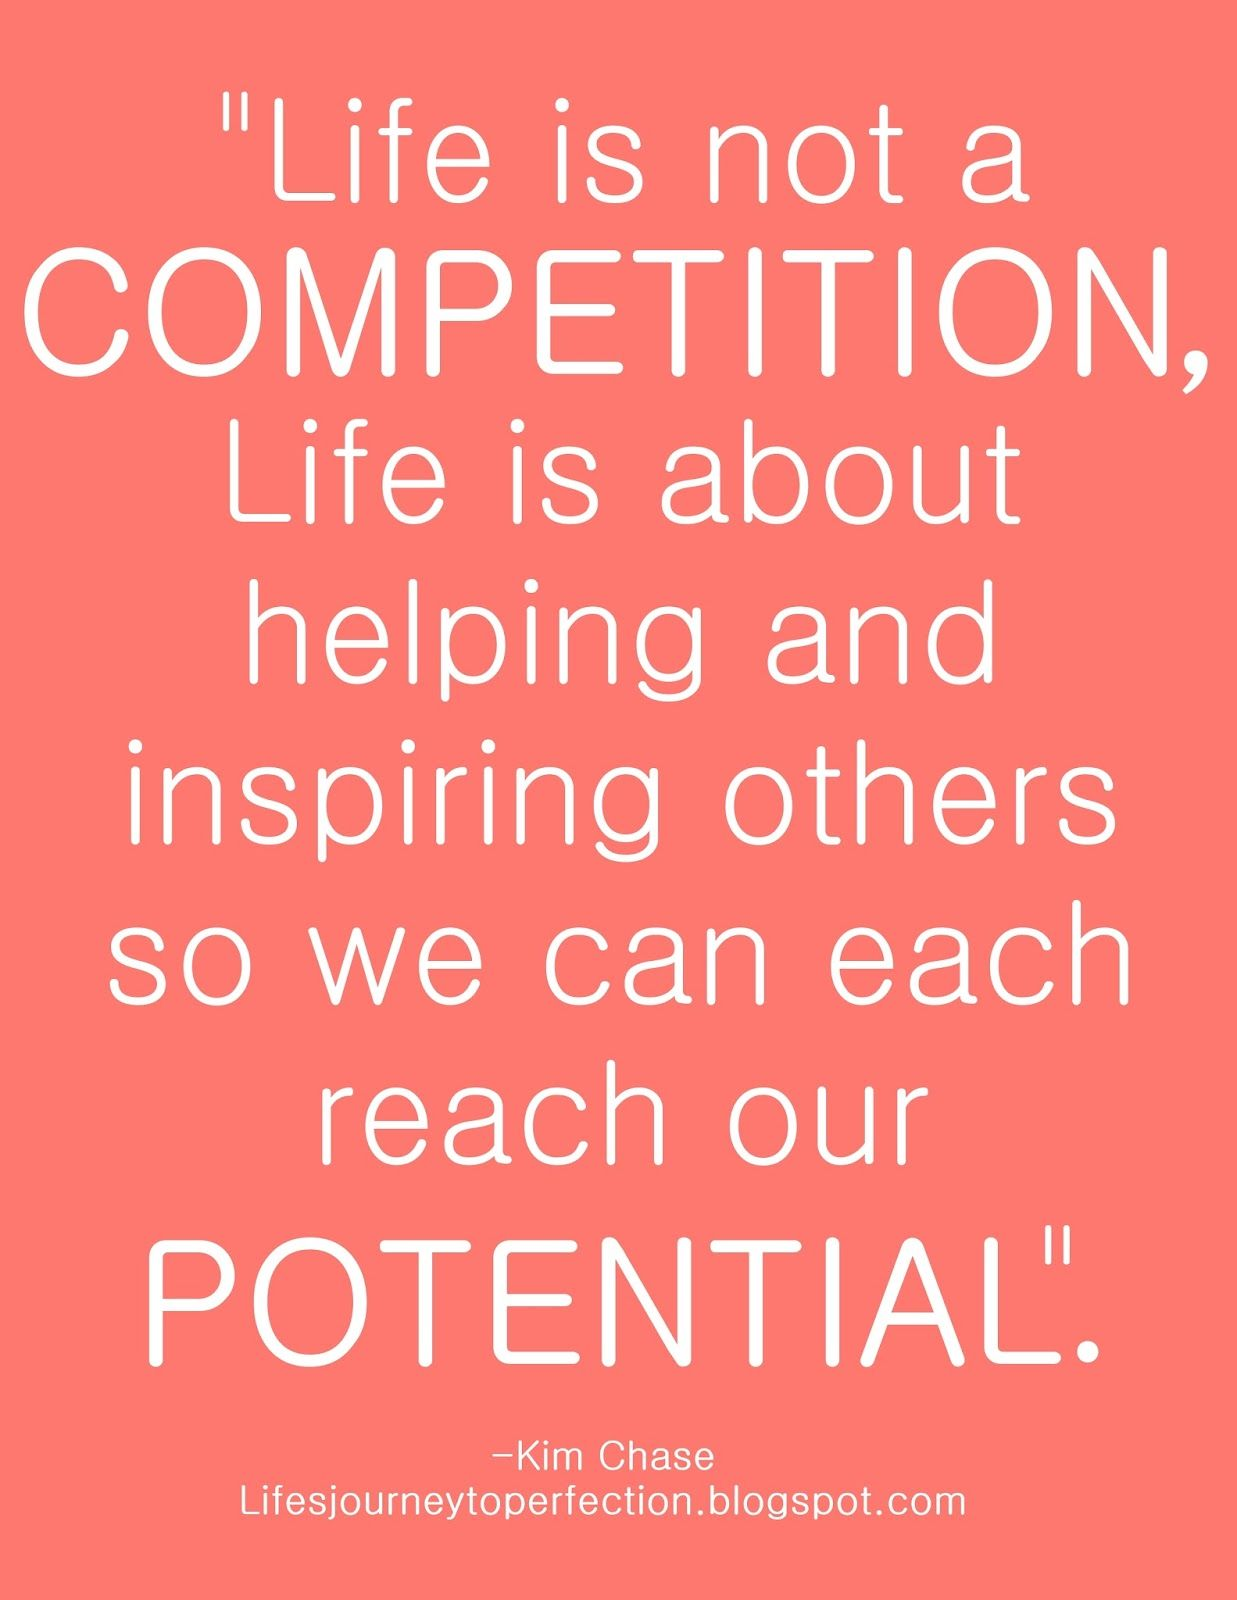 Helping Each Other Quotes : helping, other, quotes, Competition..., Quotable, Quotes,, Words,, Inspirational, Words